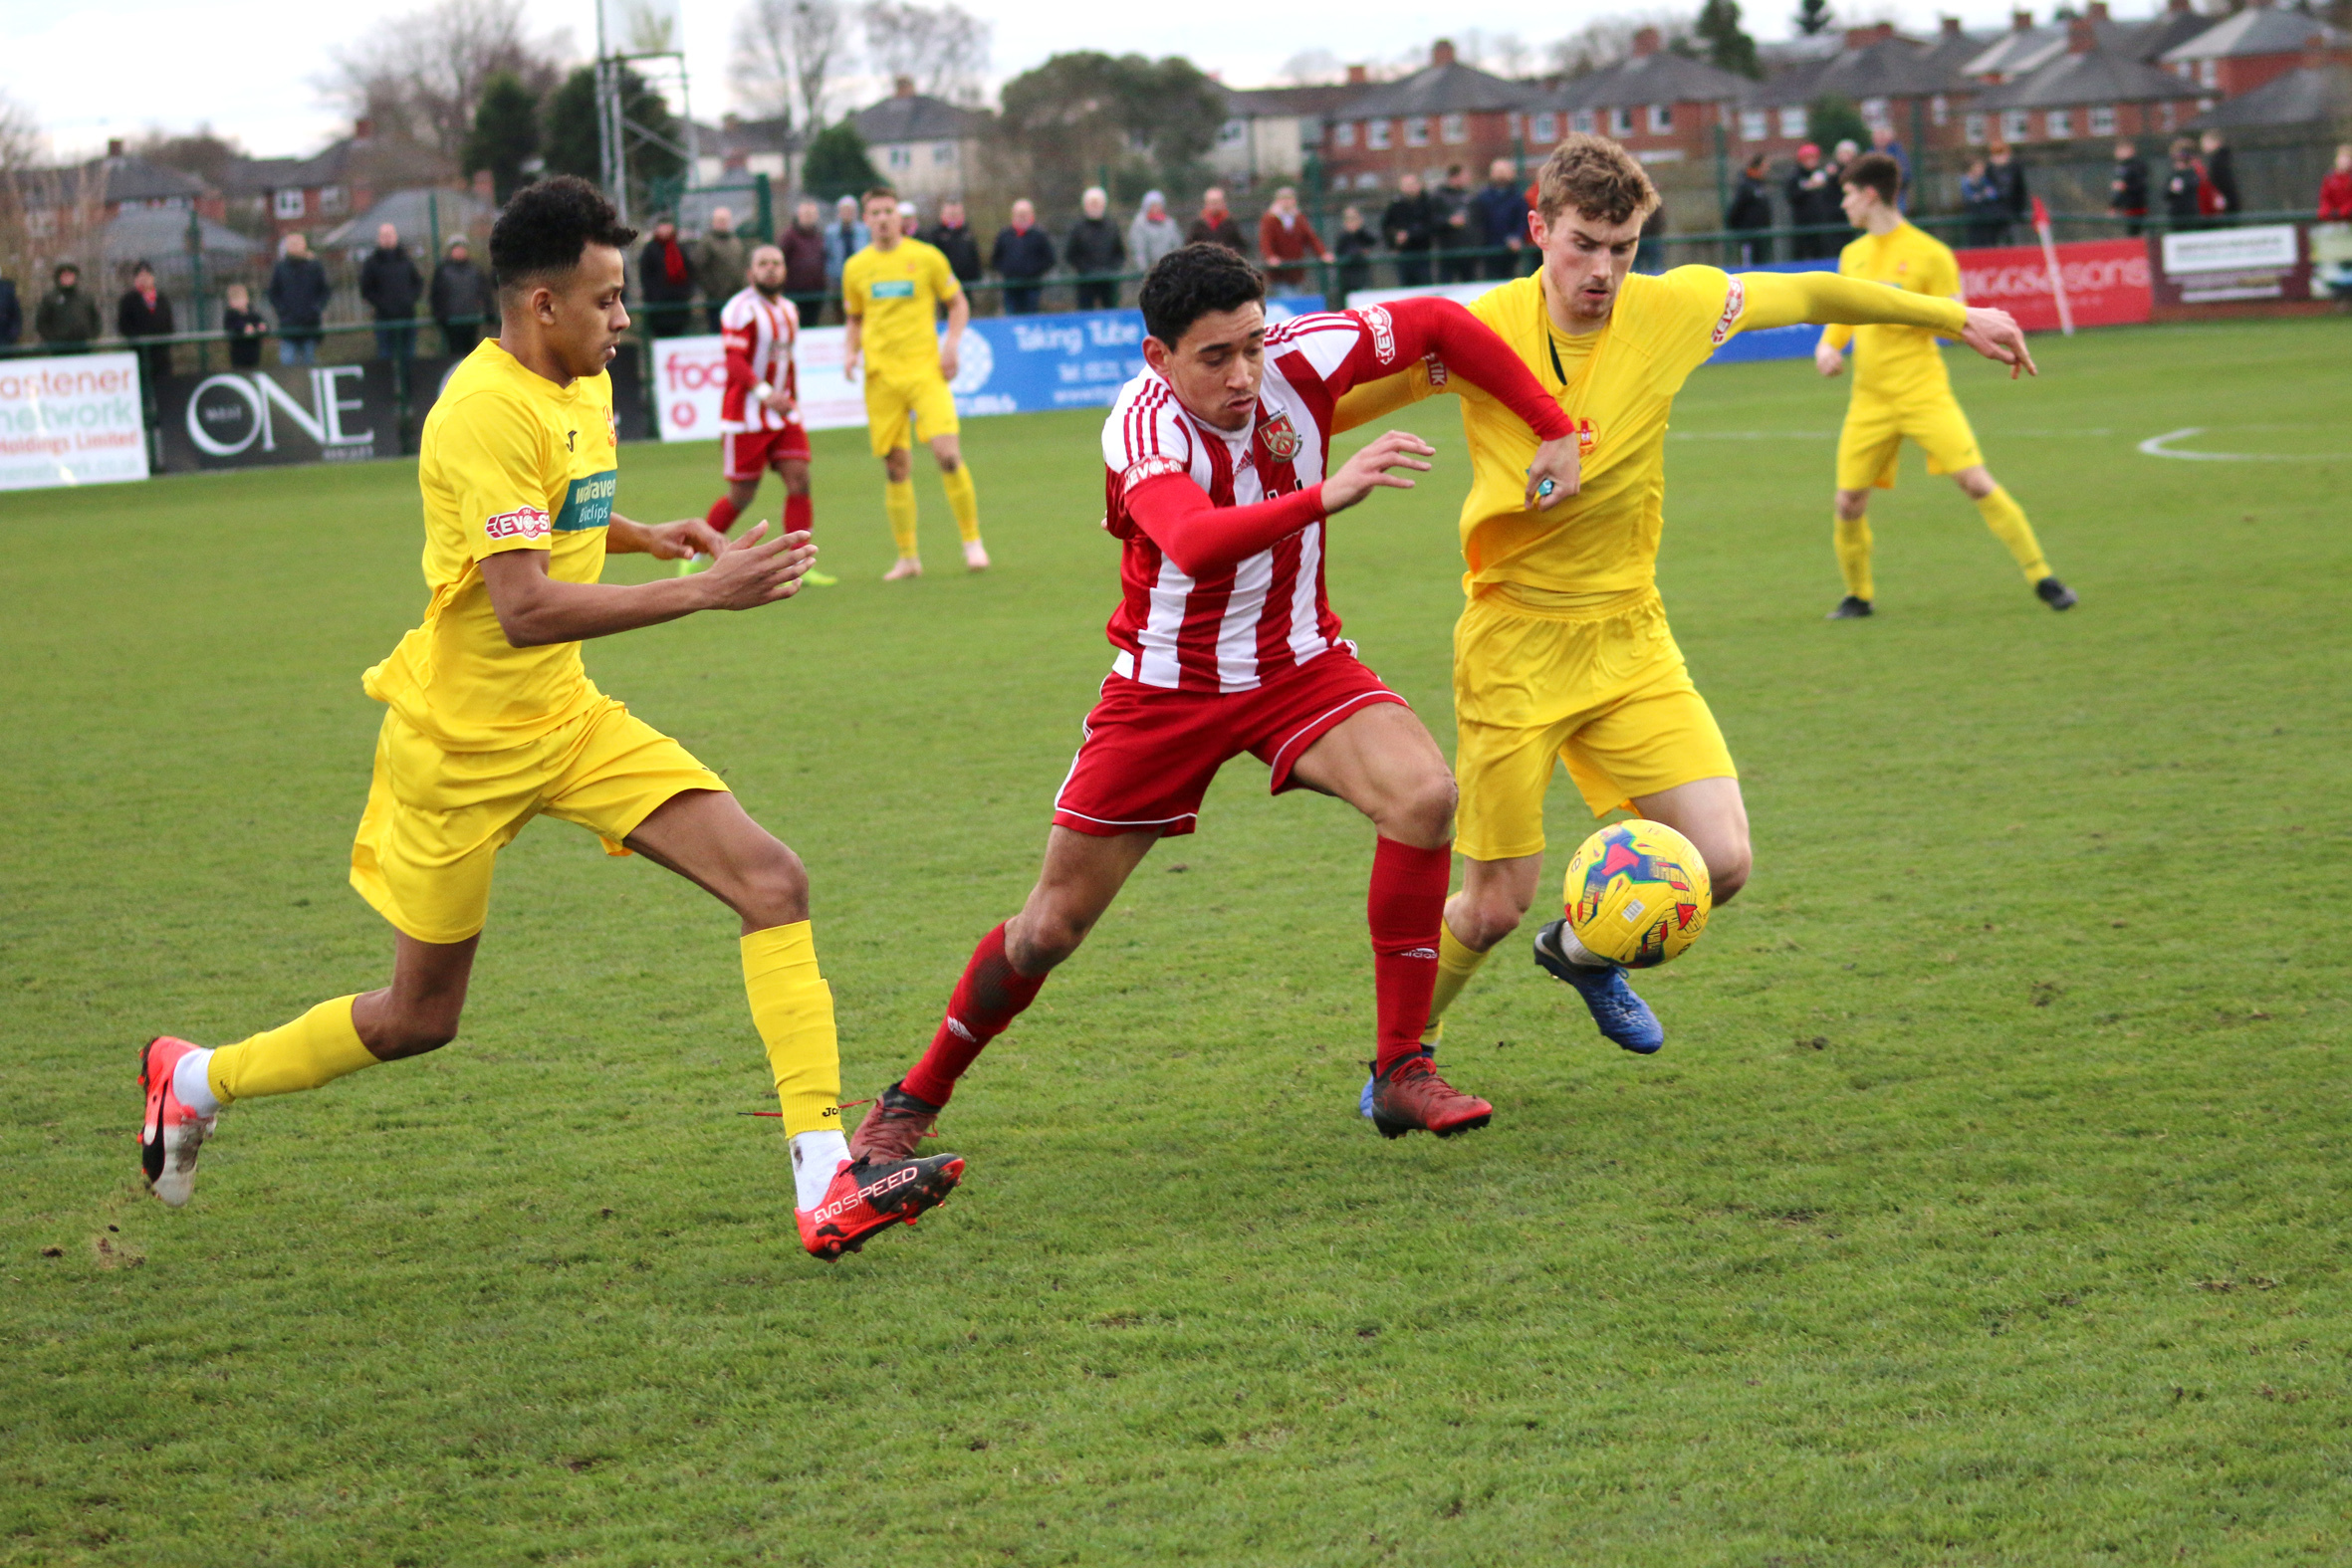 Kaiman Anderson in action against Banbury